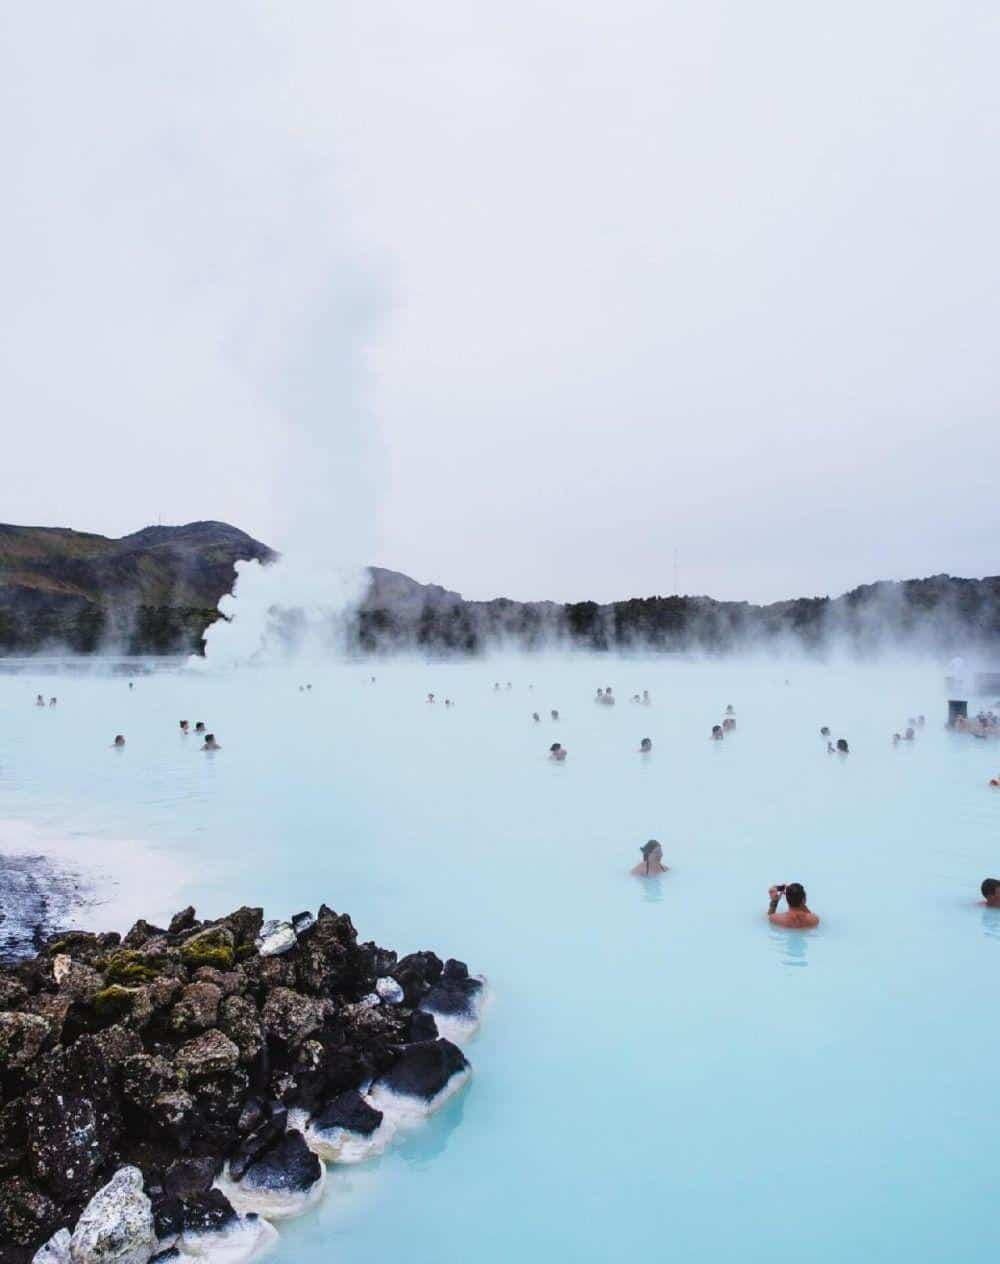 people soaking in the blue lagoon- considered one of the Top Places to Visit in Iceland